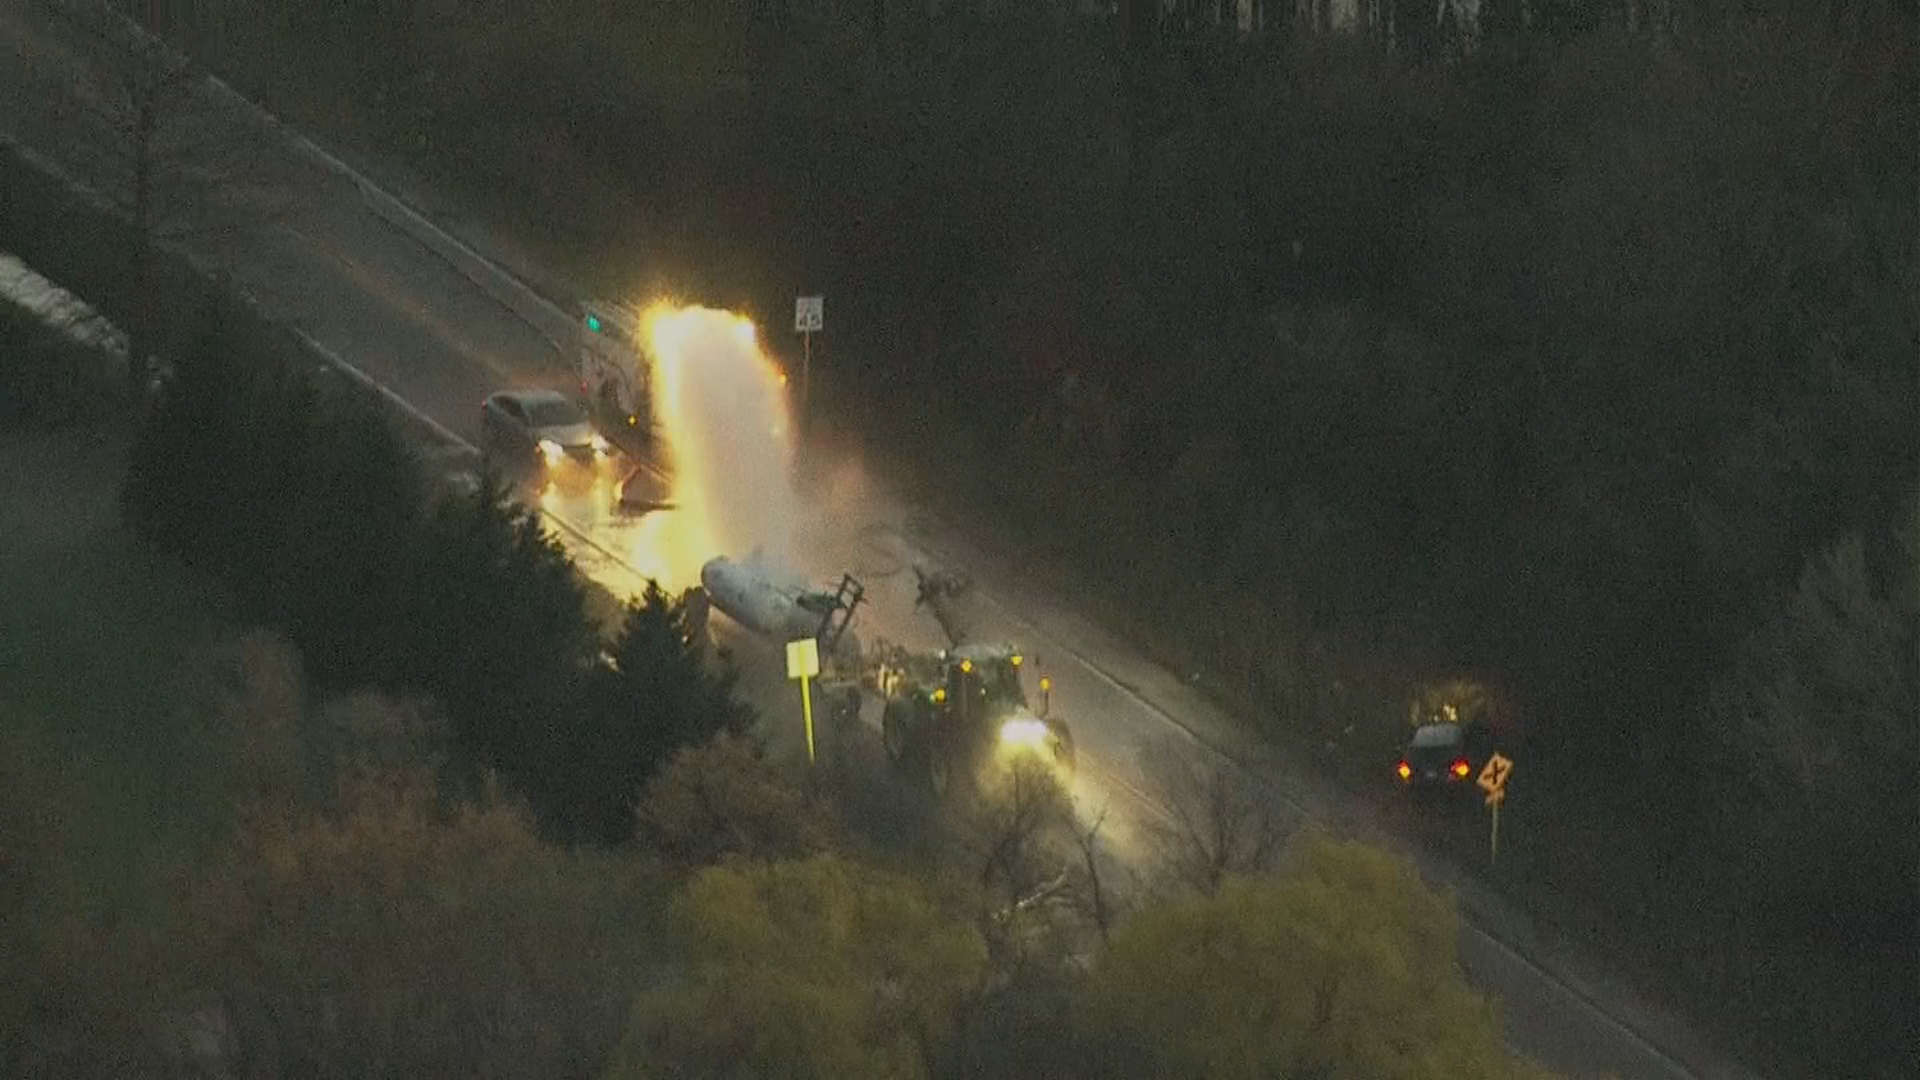 At Least 37 Hospitalized After Chemical Spill in Chicago Suburb